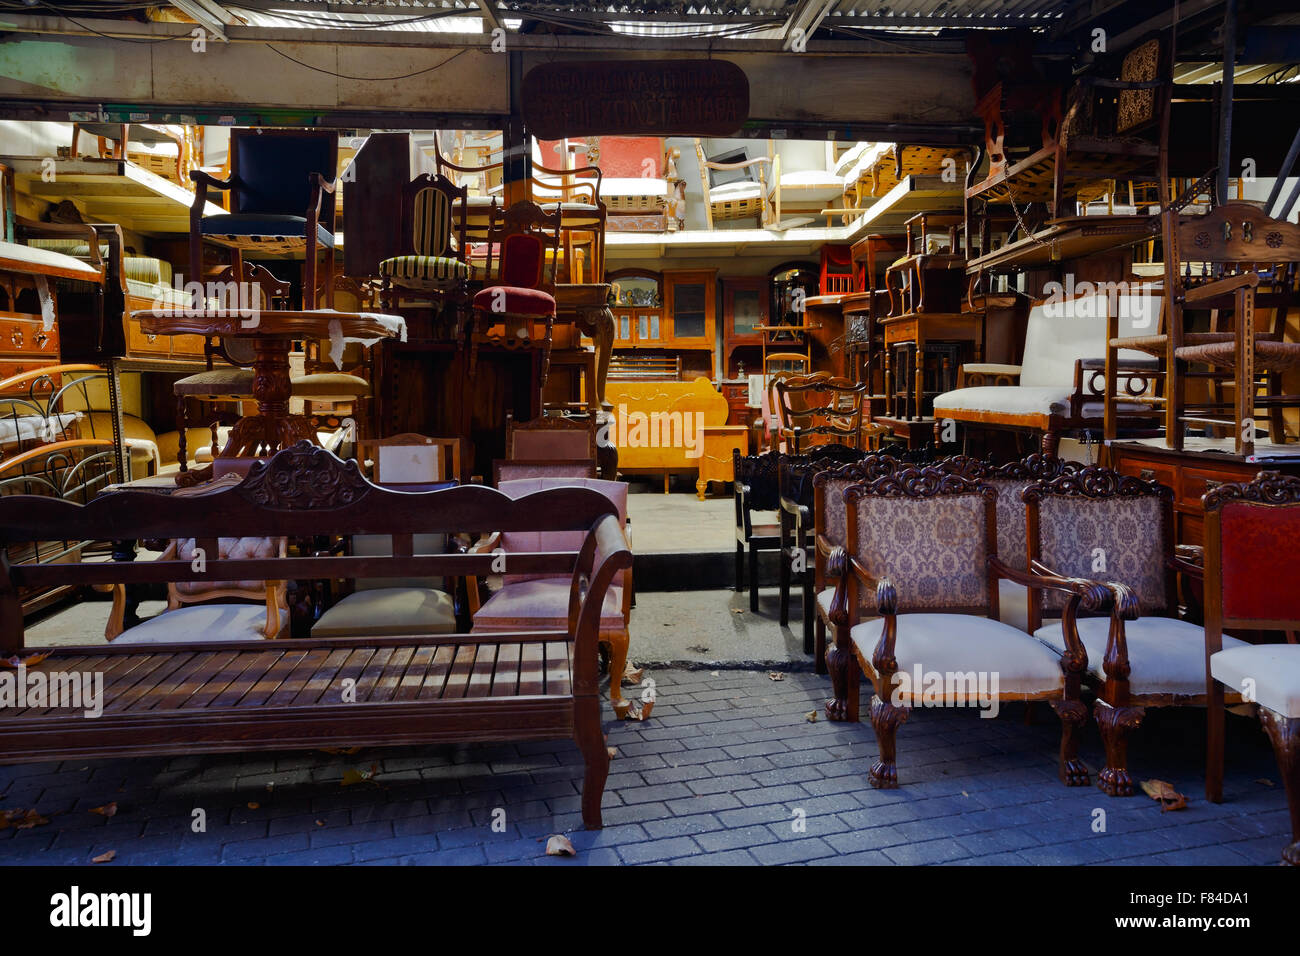 Antique furniture shop in the flea market in the Monastiraki area in Plaka,  Athens. - Antique Furniture Shop In The Flea Market In The Monastiraki Area In